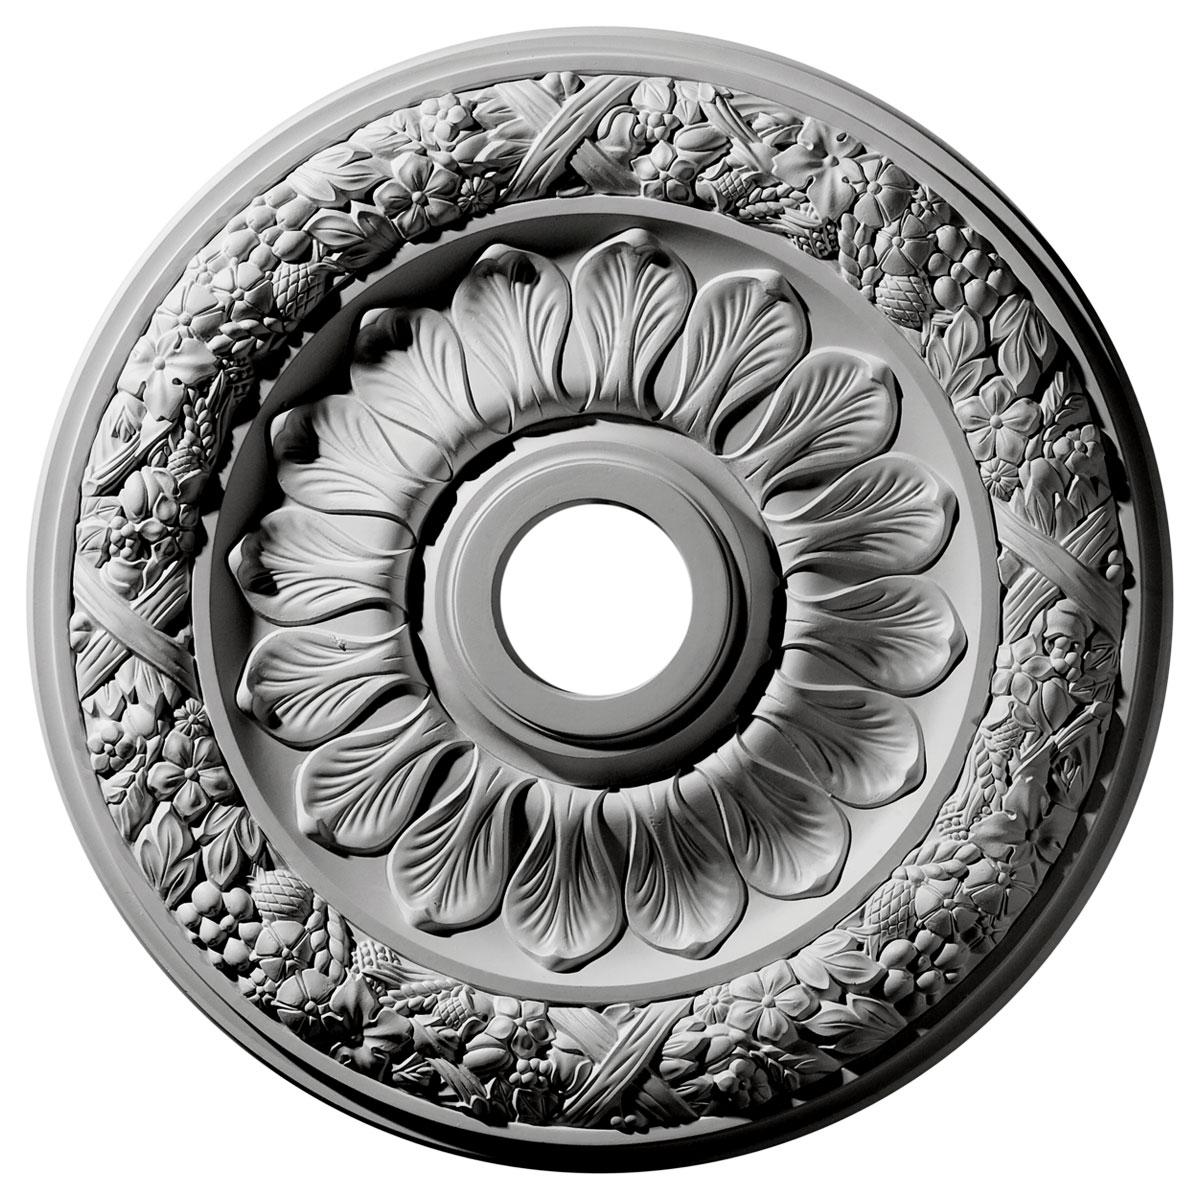 """24""""OD x 4""""ID x 1 1/2""""P Swindon Ceiling Medallion (Fits Canopies up to 6 1/8"""")"""